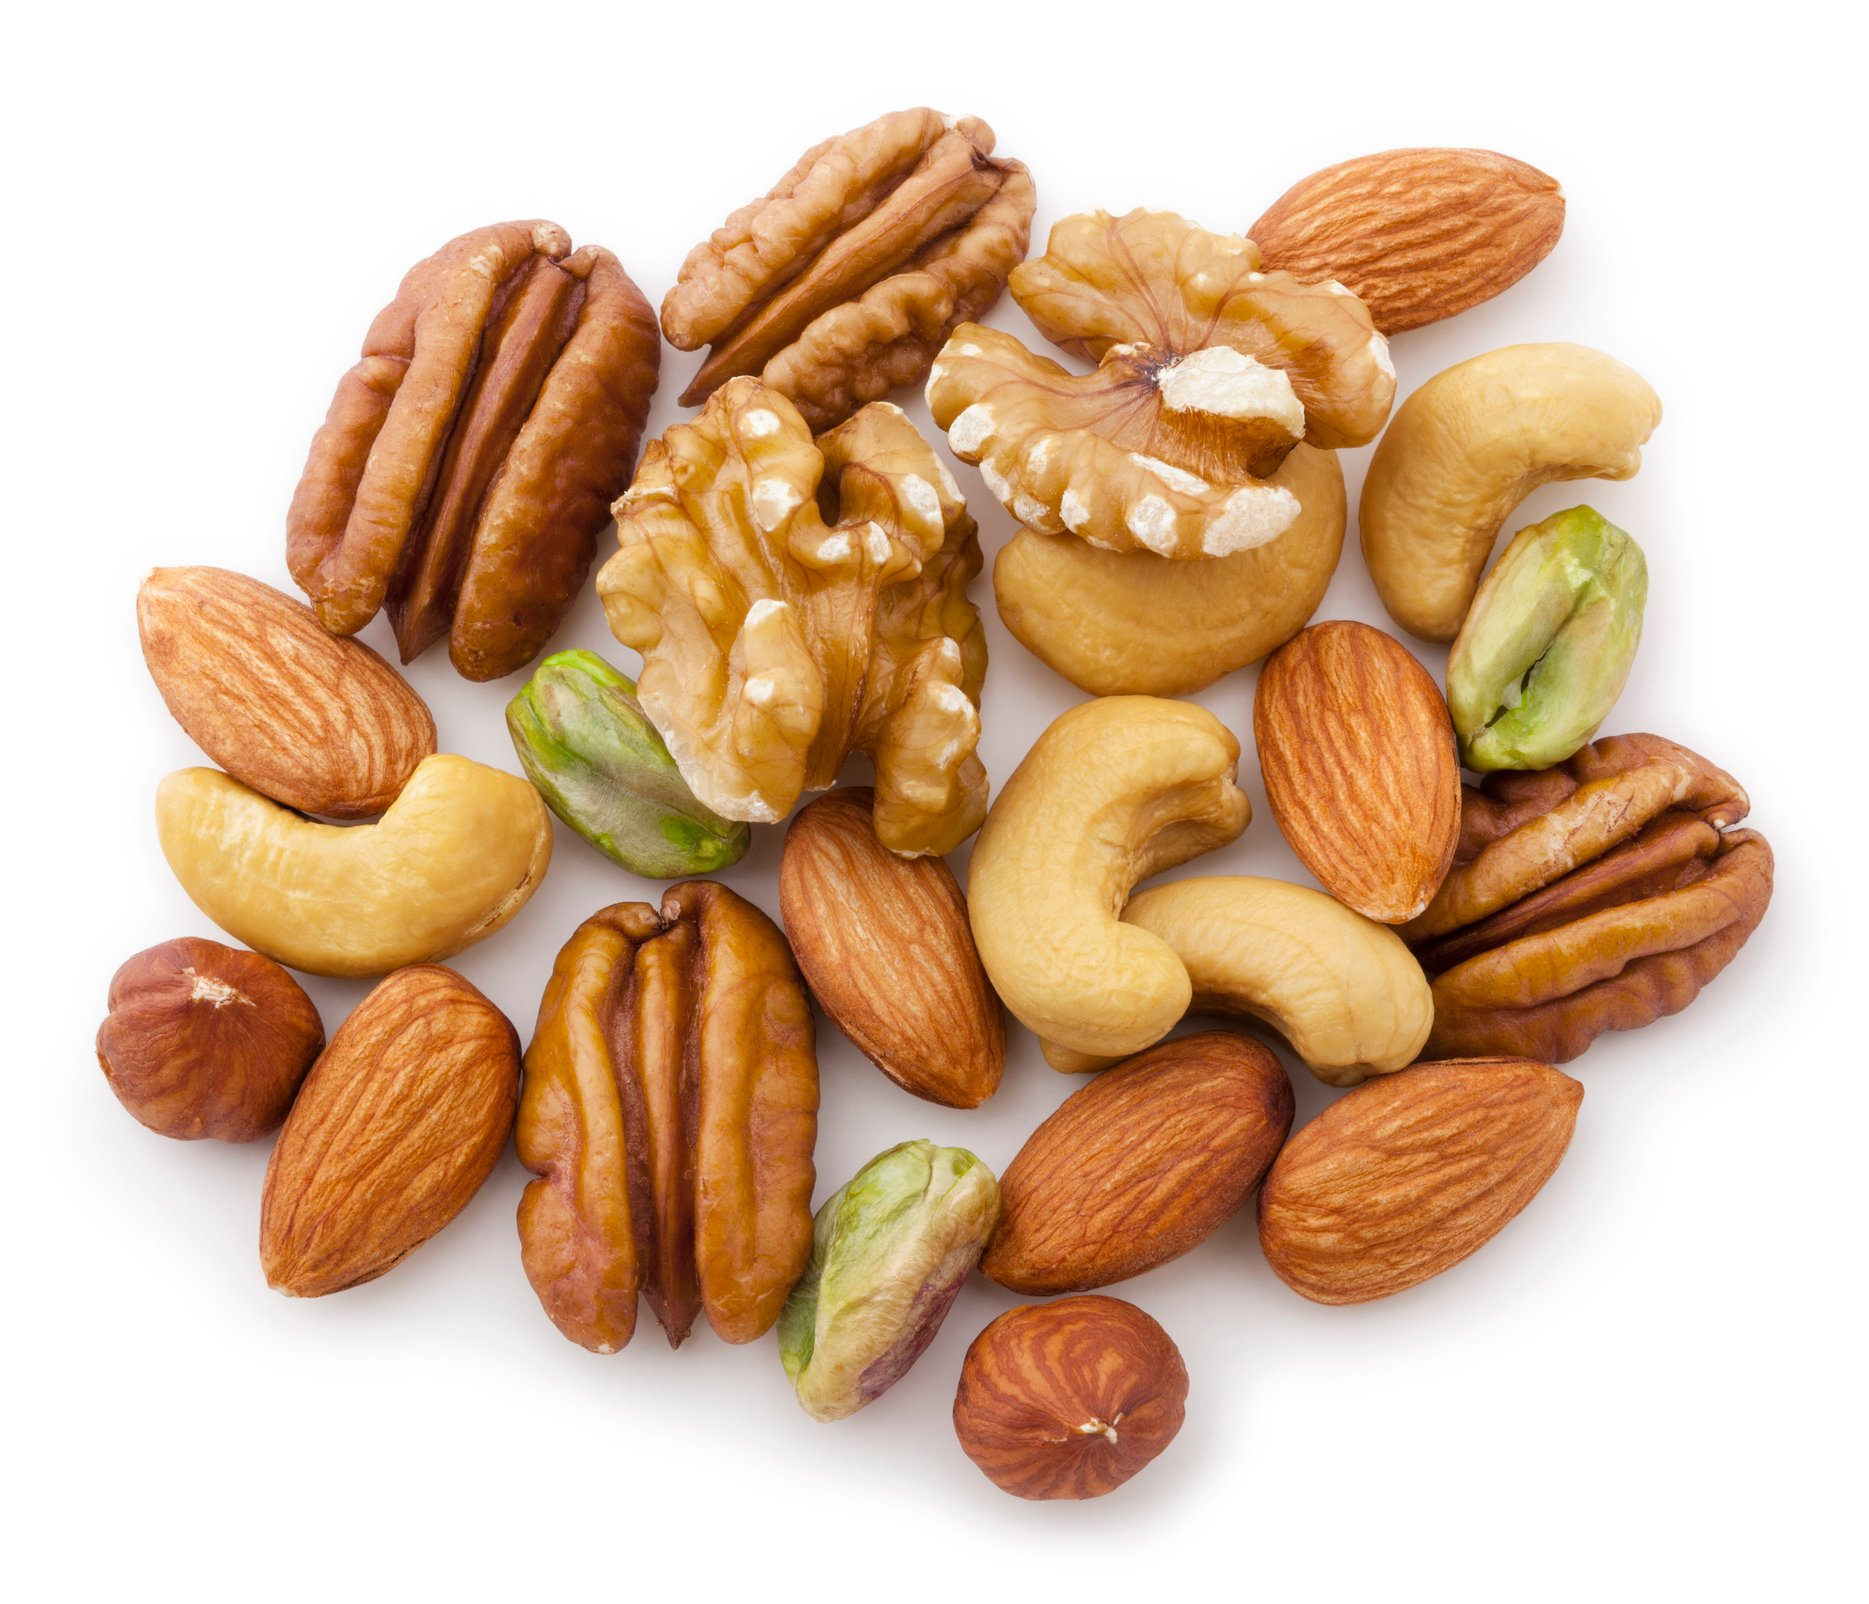 Walnuts, pecans, almonds, hazelnuts and pistachios are great sources of healthy fats. (iStock Photo)